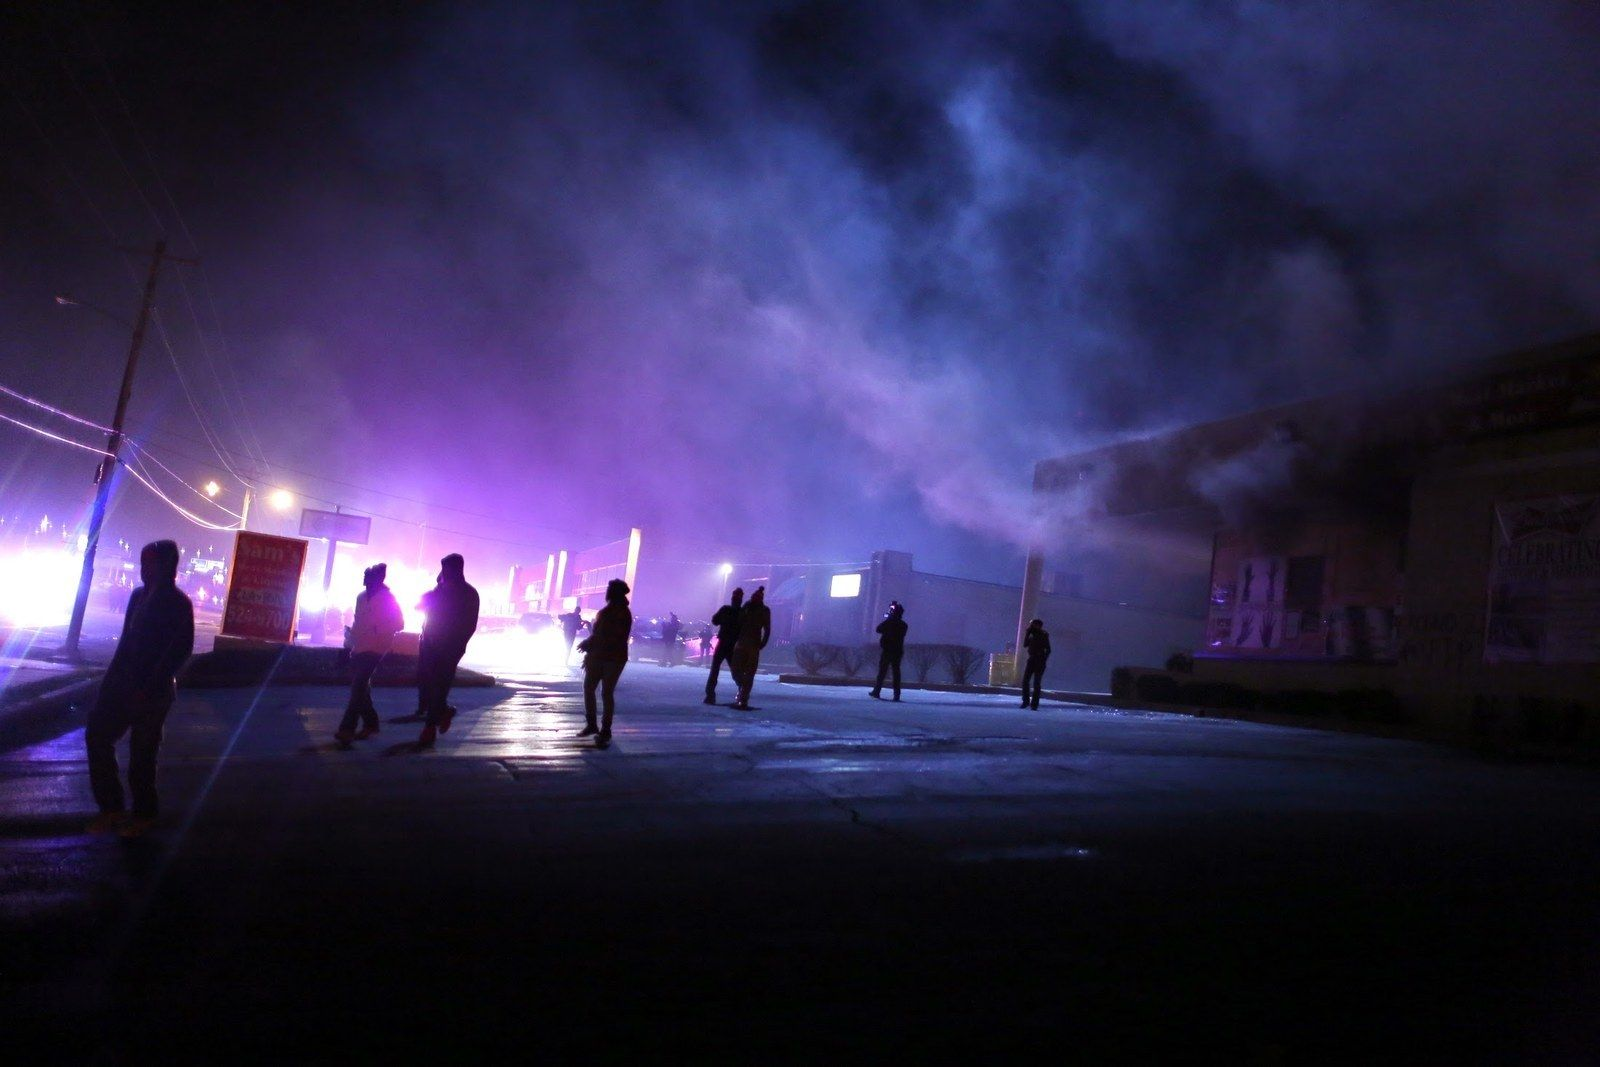 Here are the most powerful photos from the ferguson